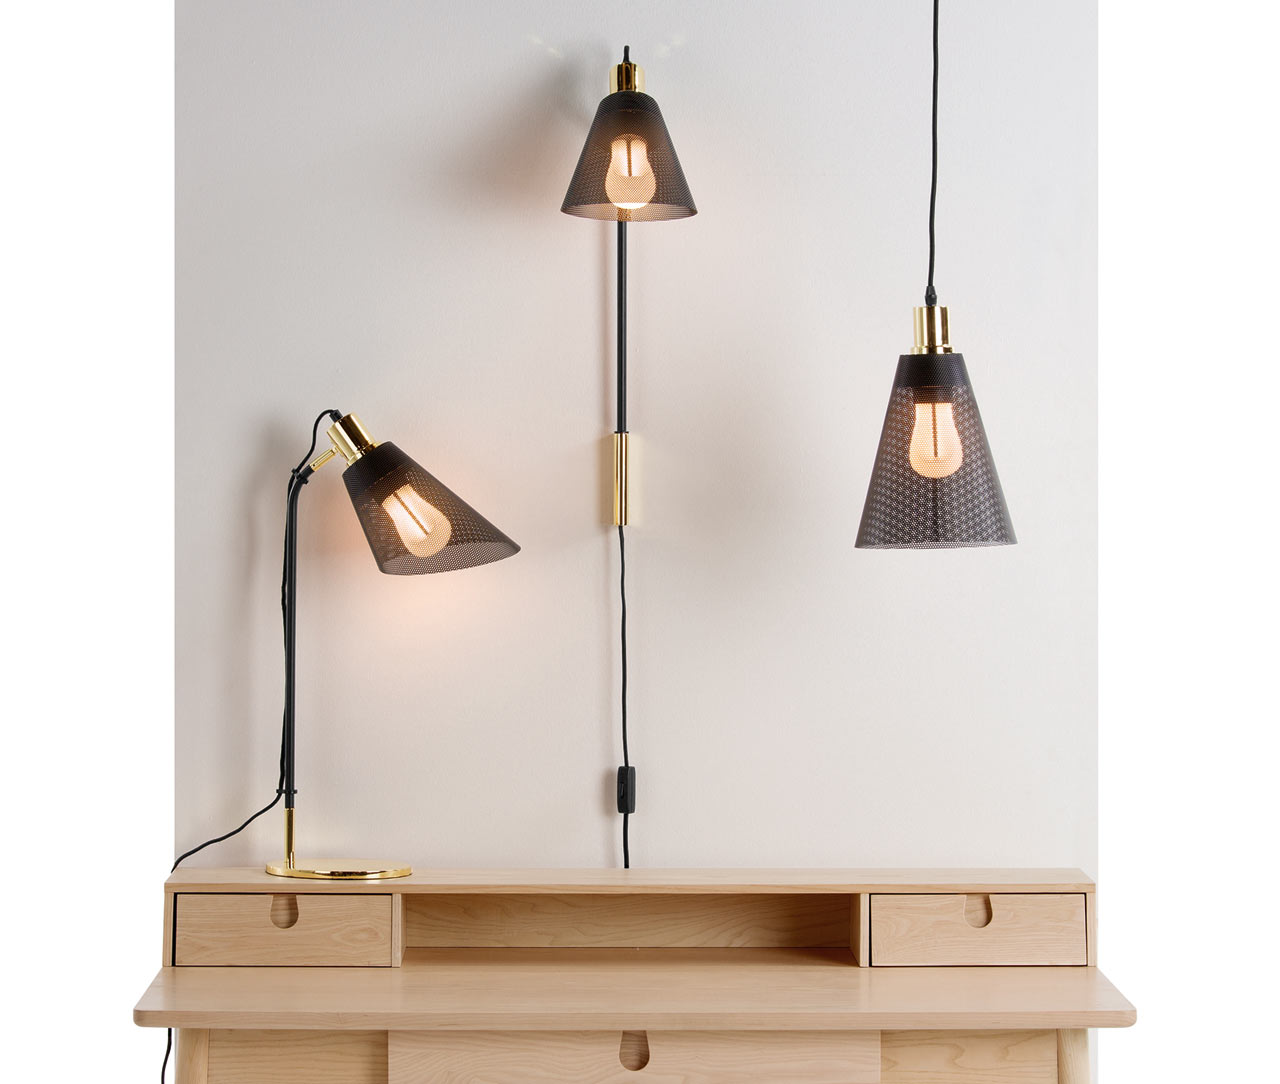 Plumen x Made.com Launch 2nd Lighting Collection